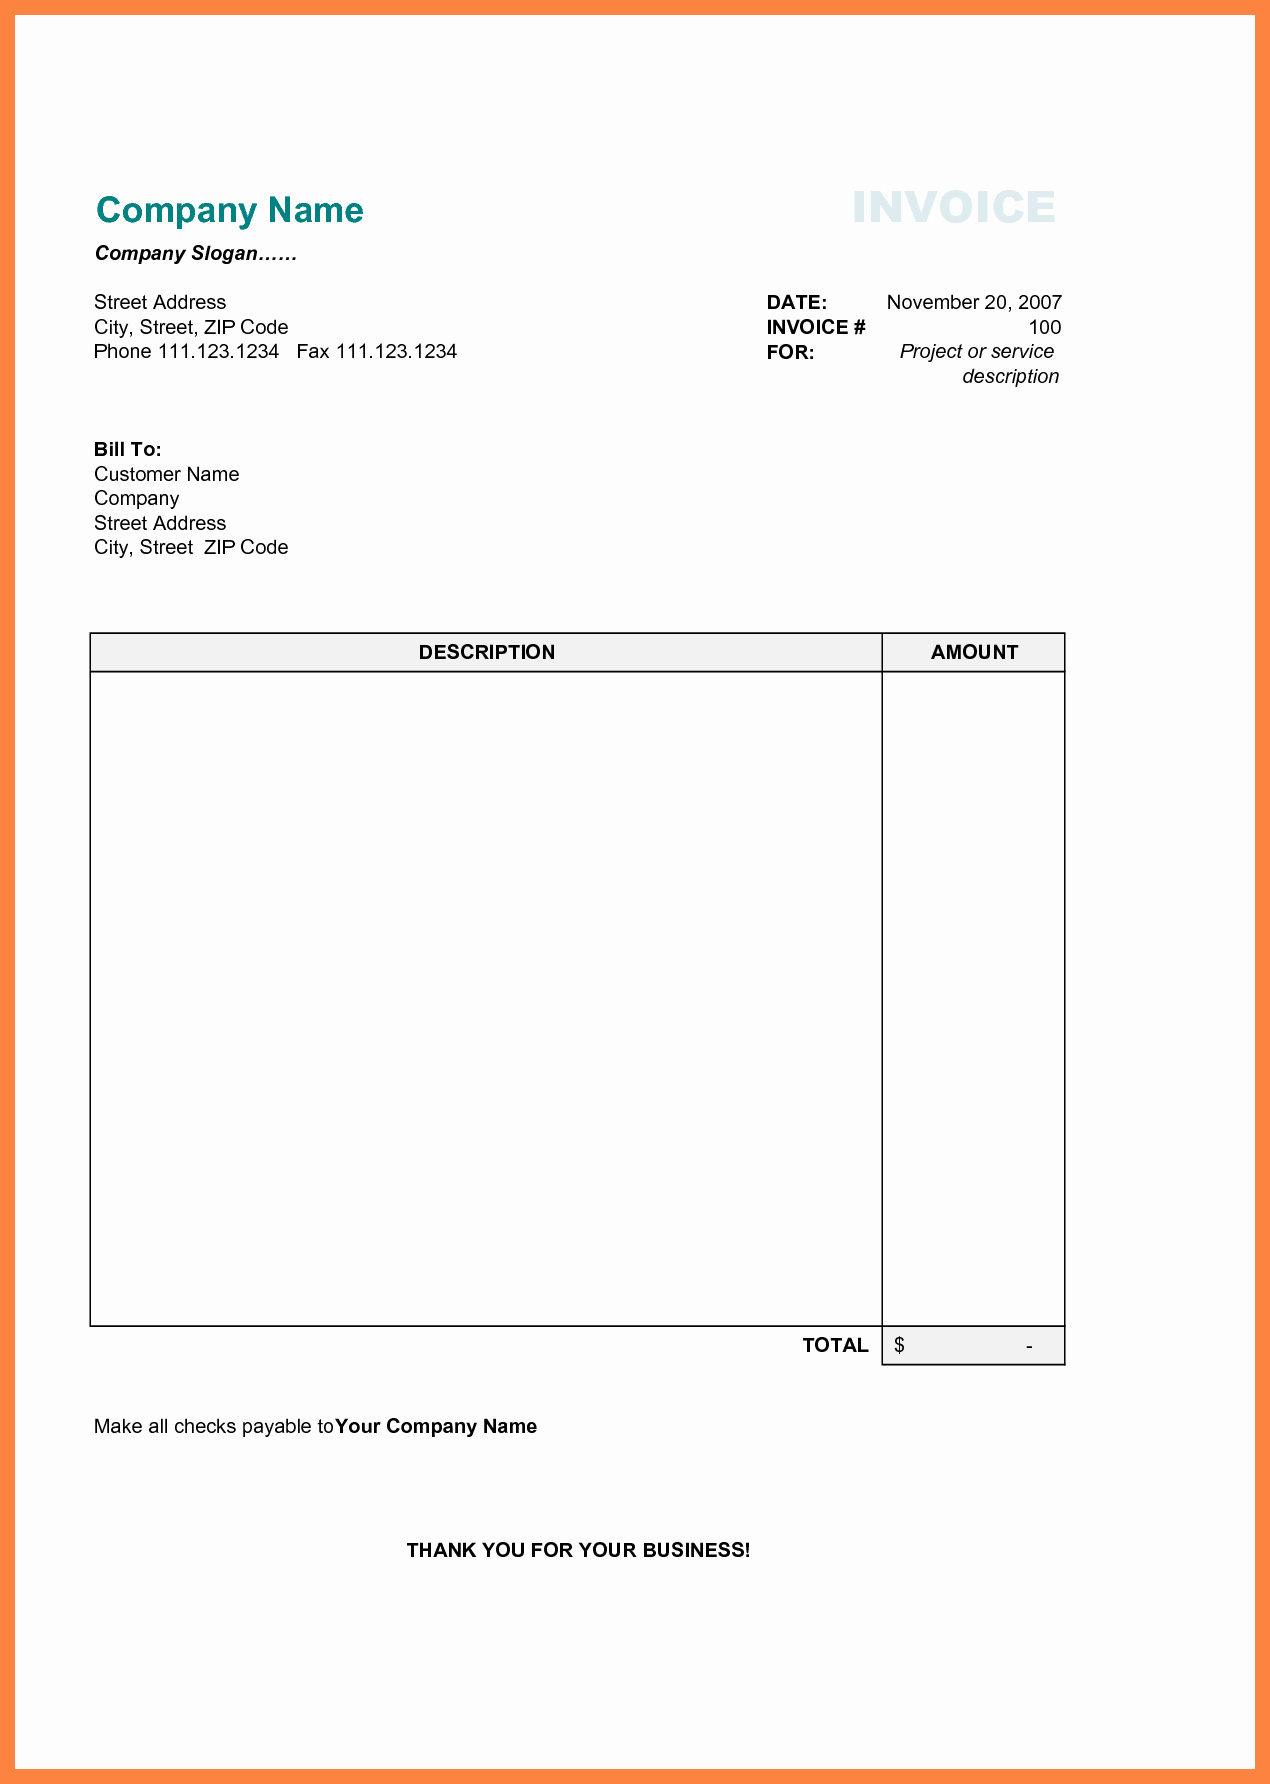 Microsoft Word Invoice Template Free Awesome Free Printable Business Invoice Template Invoice format